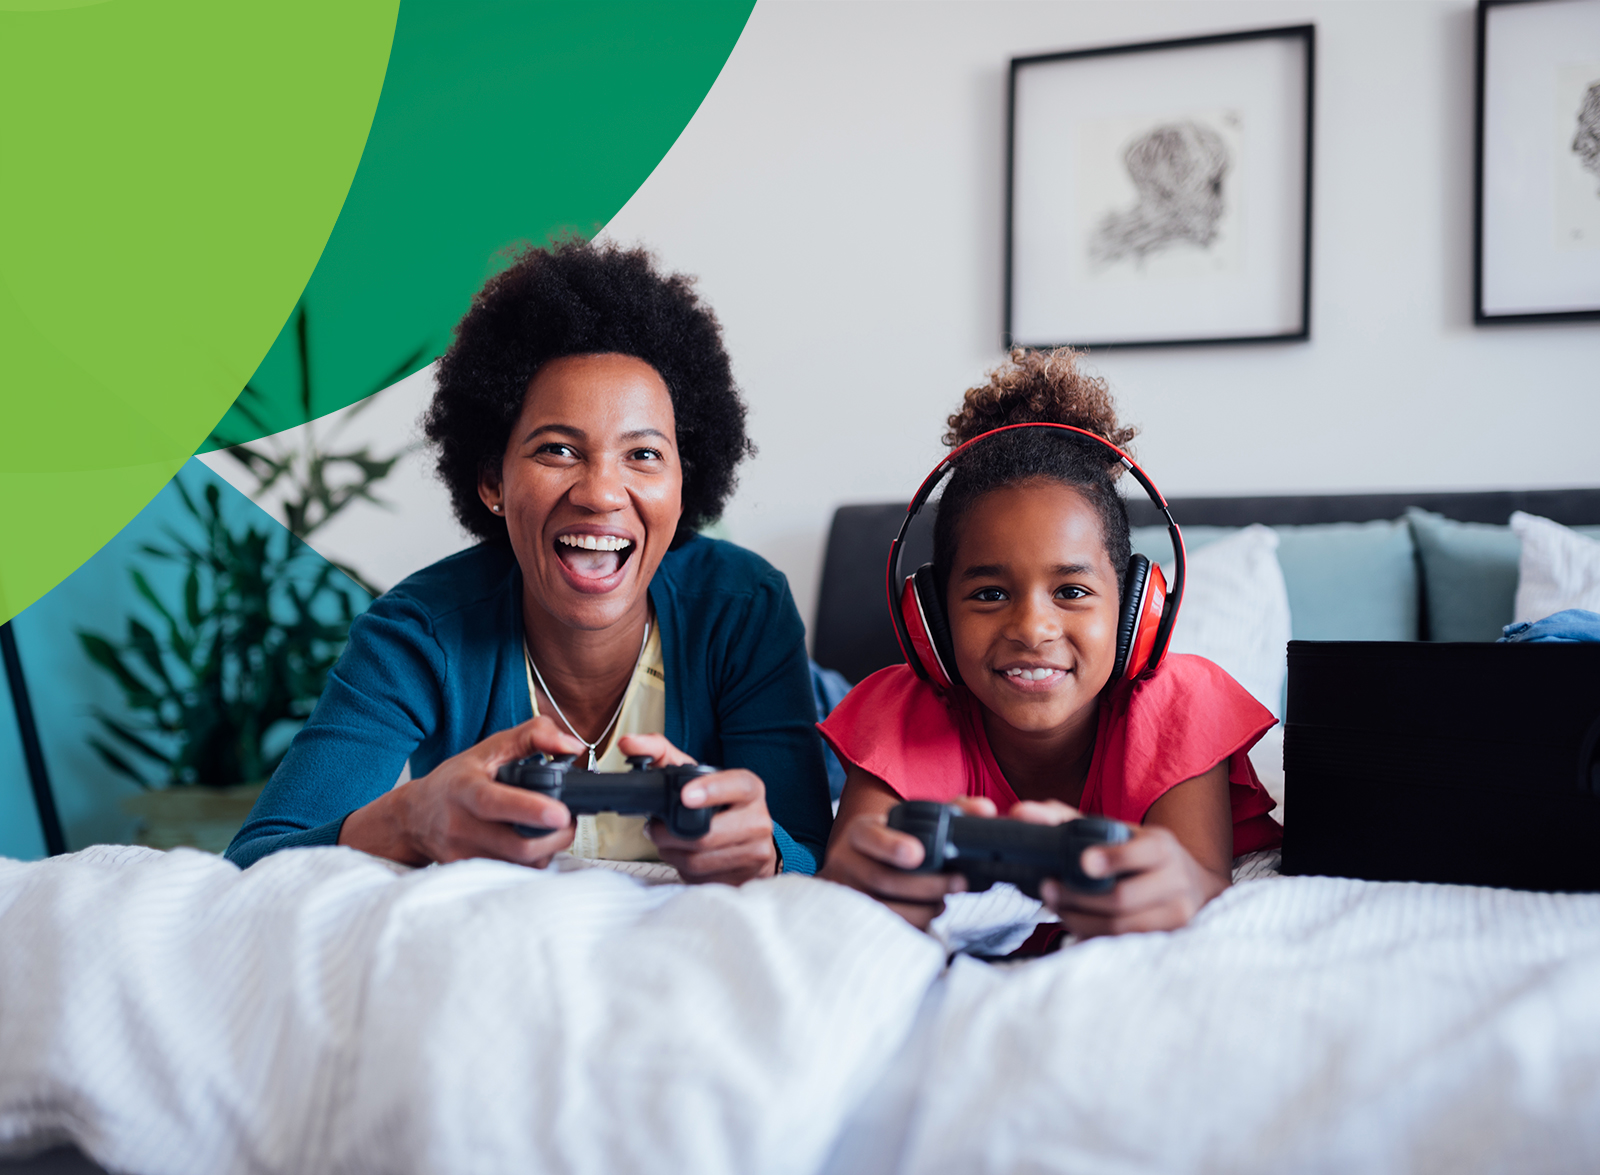 mom and daughter gaming